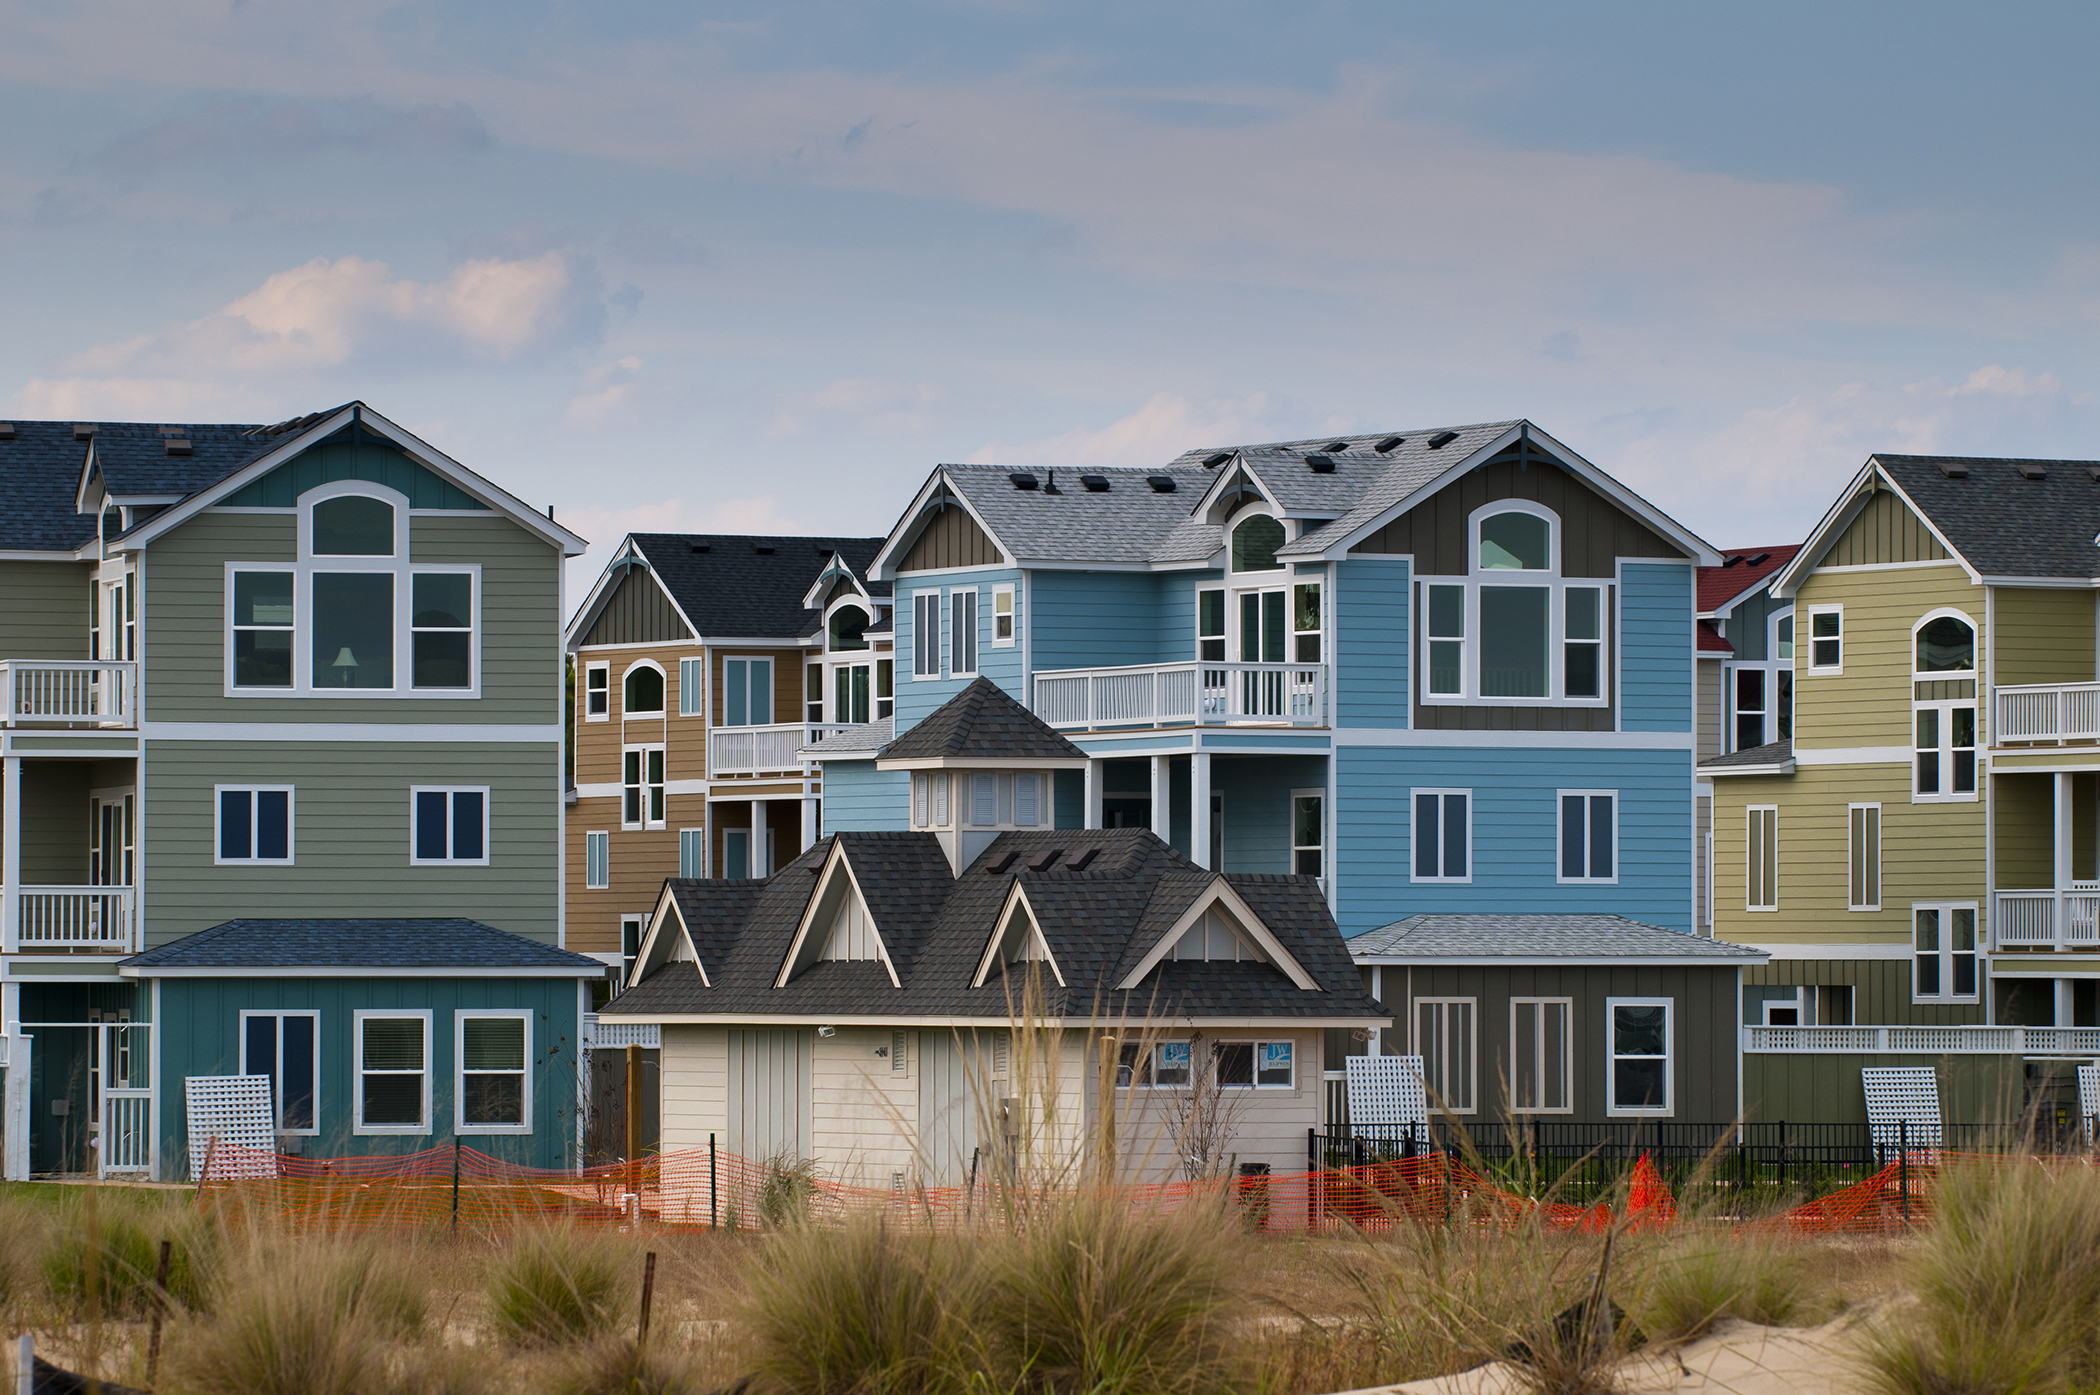 north carolina homeowners insurers agree to 4 8 rate increase. Black Bedroom Furniture Sets. Home Design Ideas